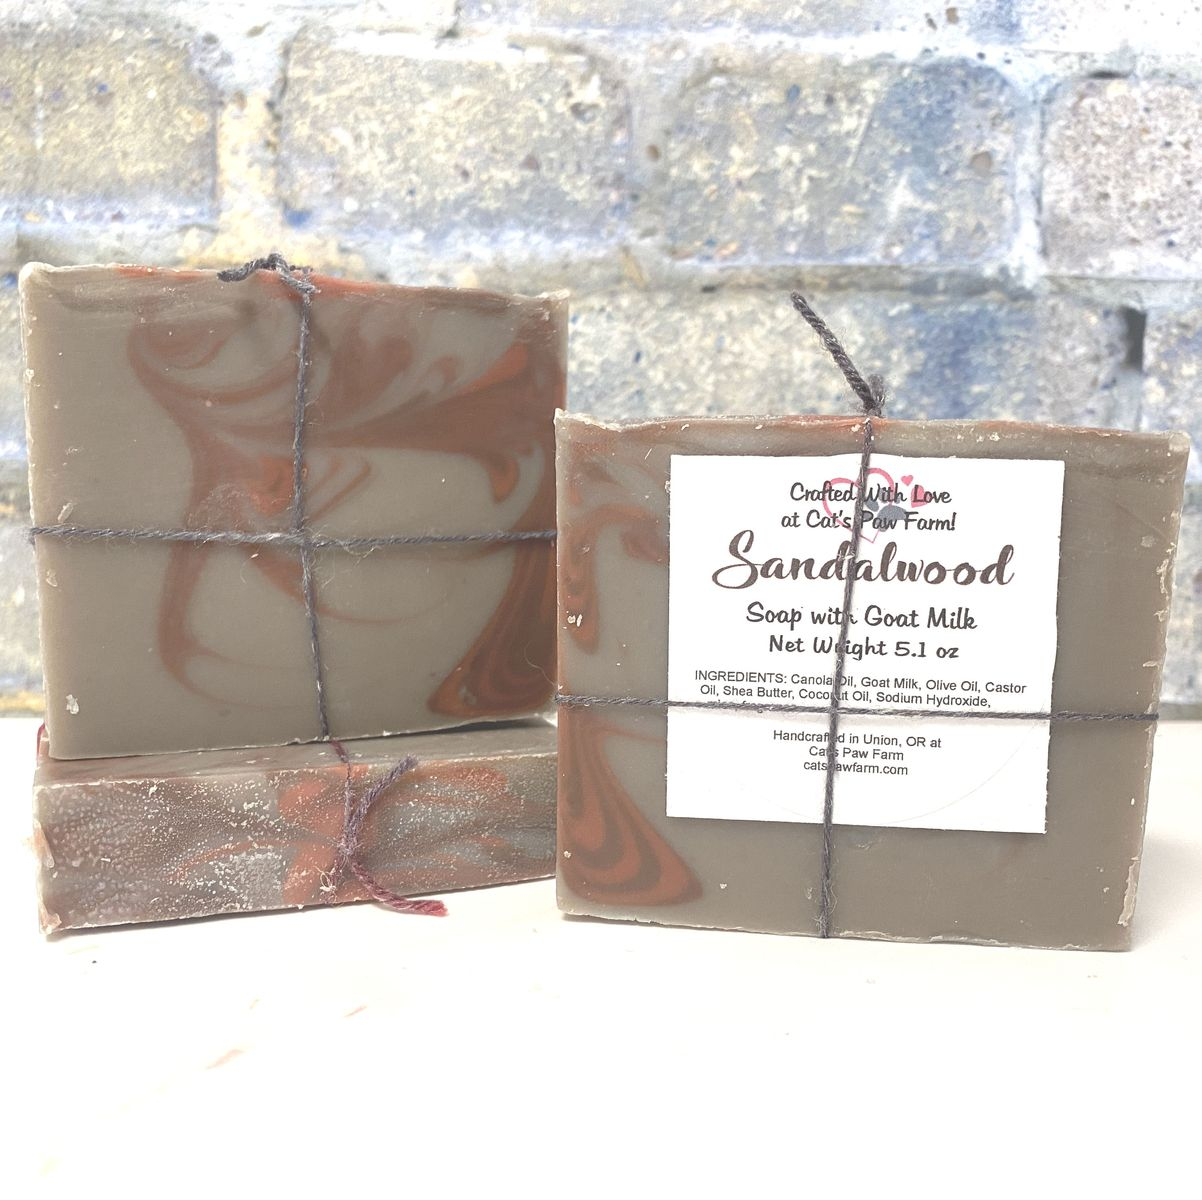 Sandalwood Scented Soap with Goat Milk